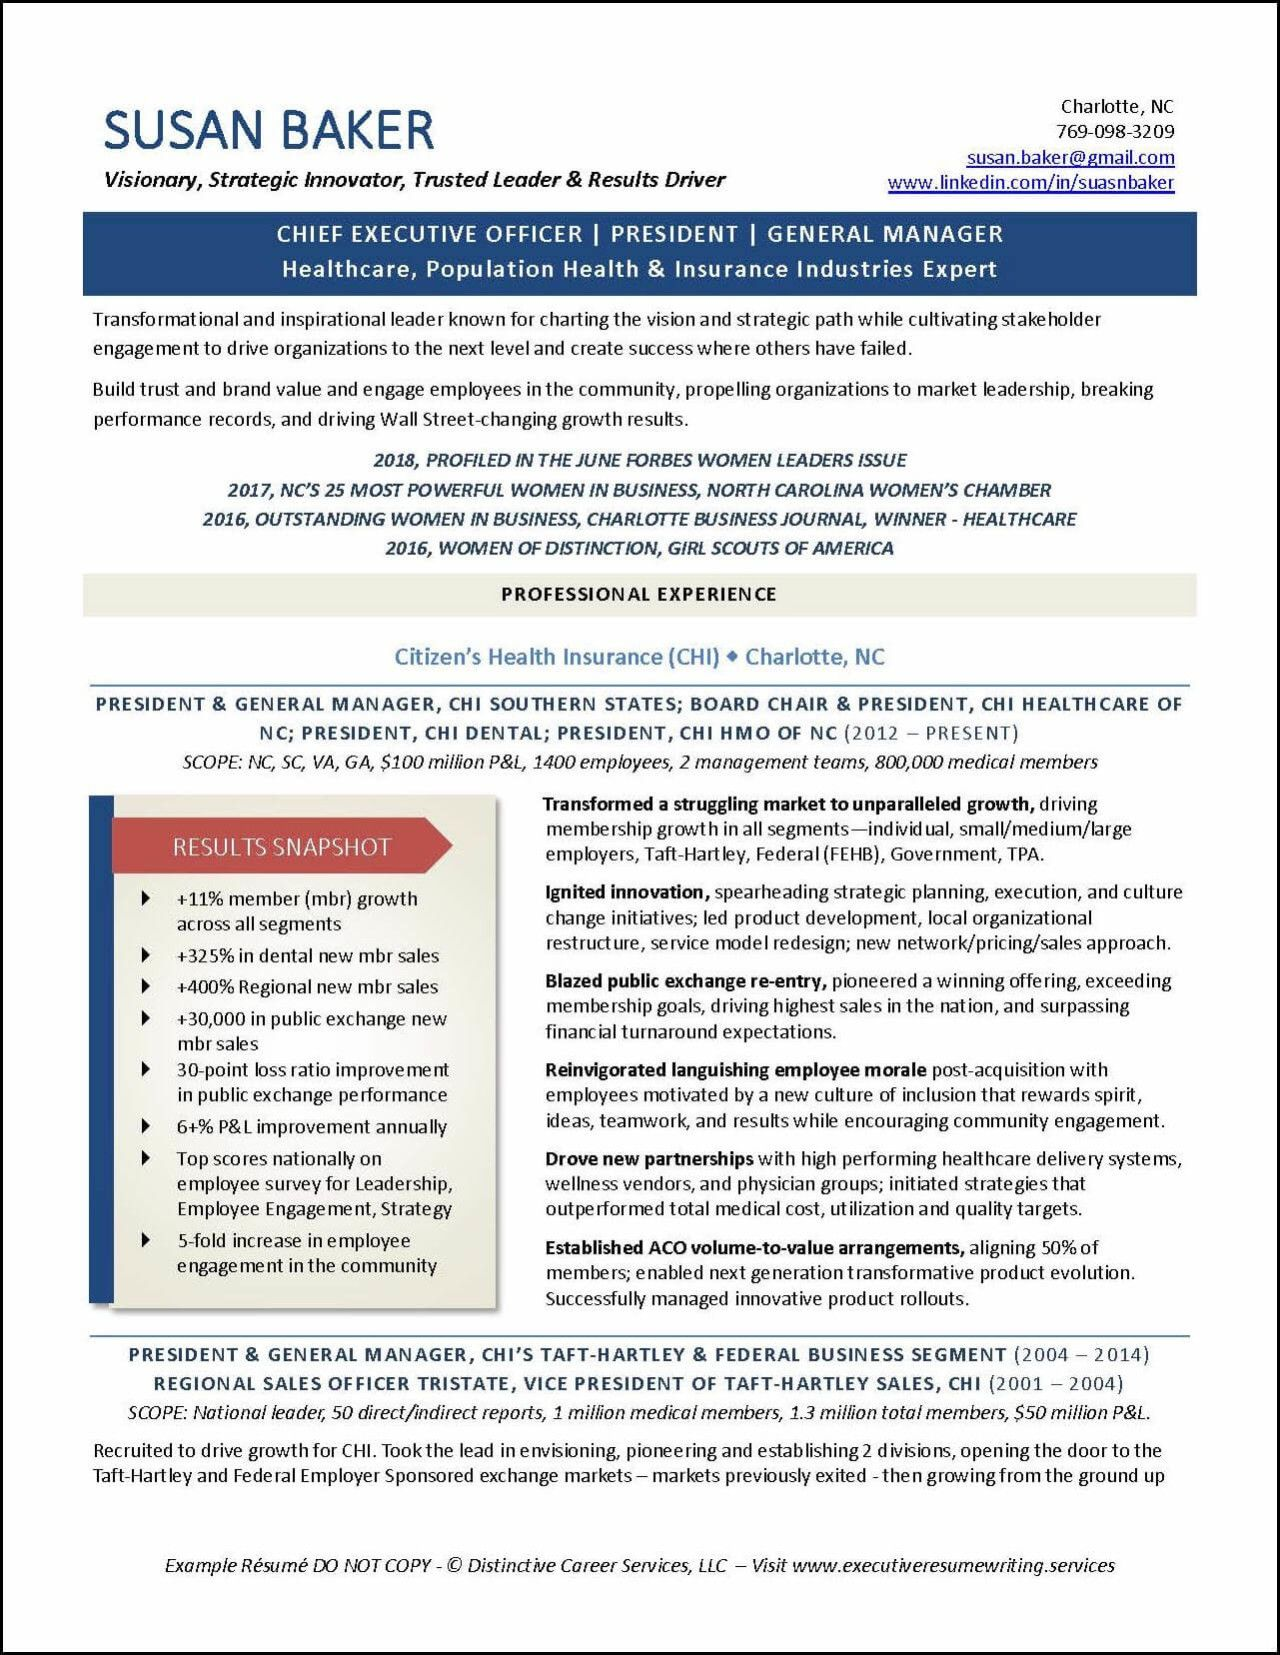 Effective Executive Resumes Communicate And Promote Your Personal Brand This One Was Written For A Ceo President Candi Executive Resume Resume Examples Resume